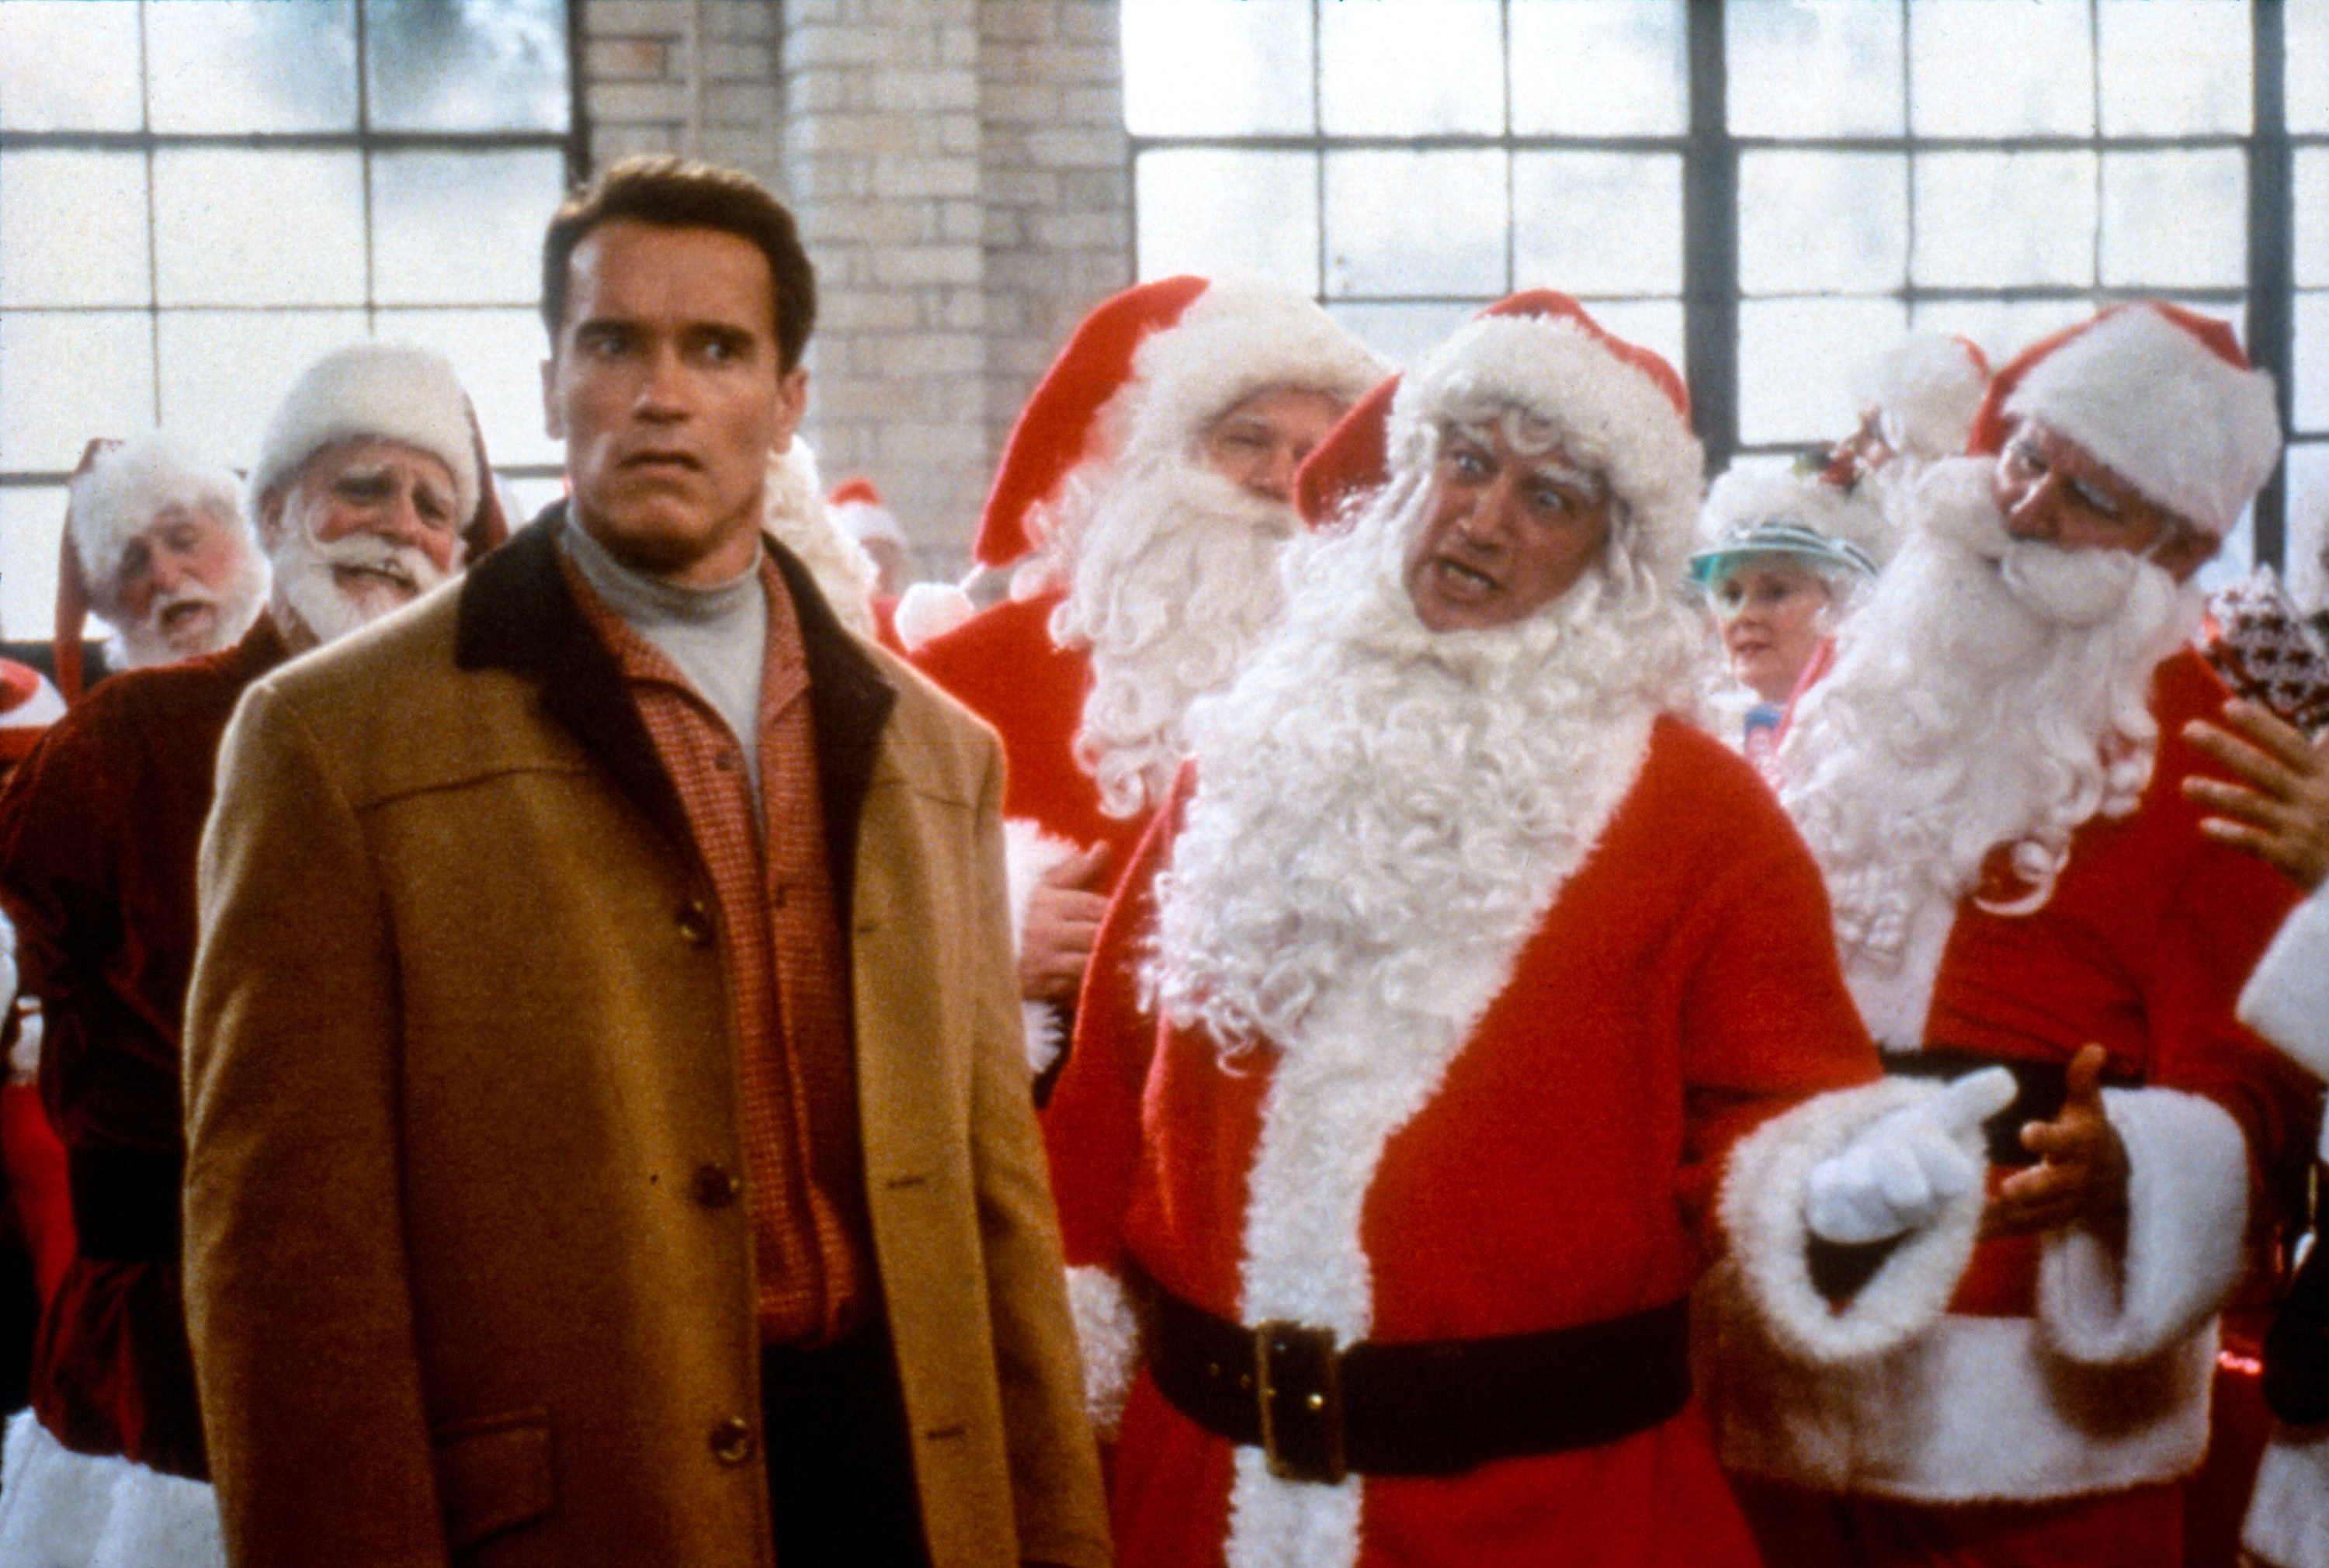 """Arnold Schwarzenegger as Howard Langston looks confused among several Santas in """"Jingle All the Way."""""""